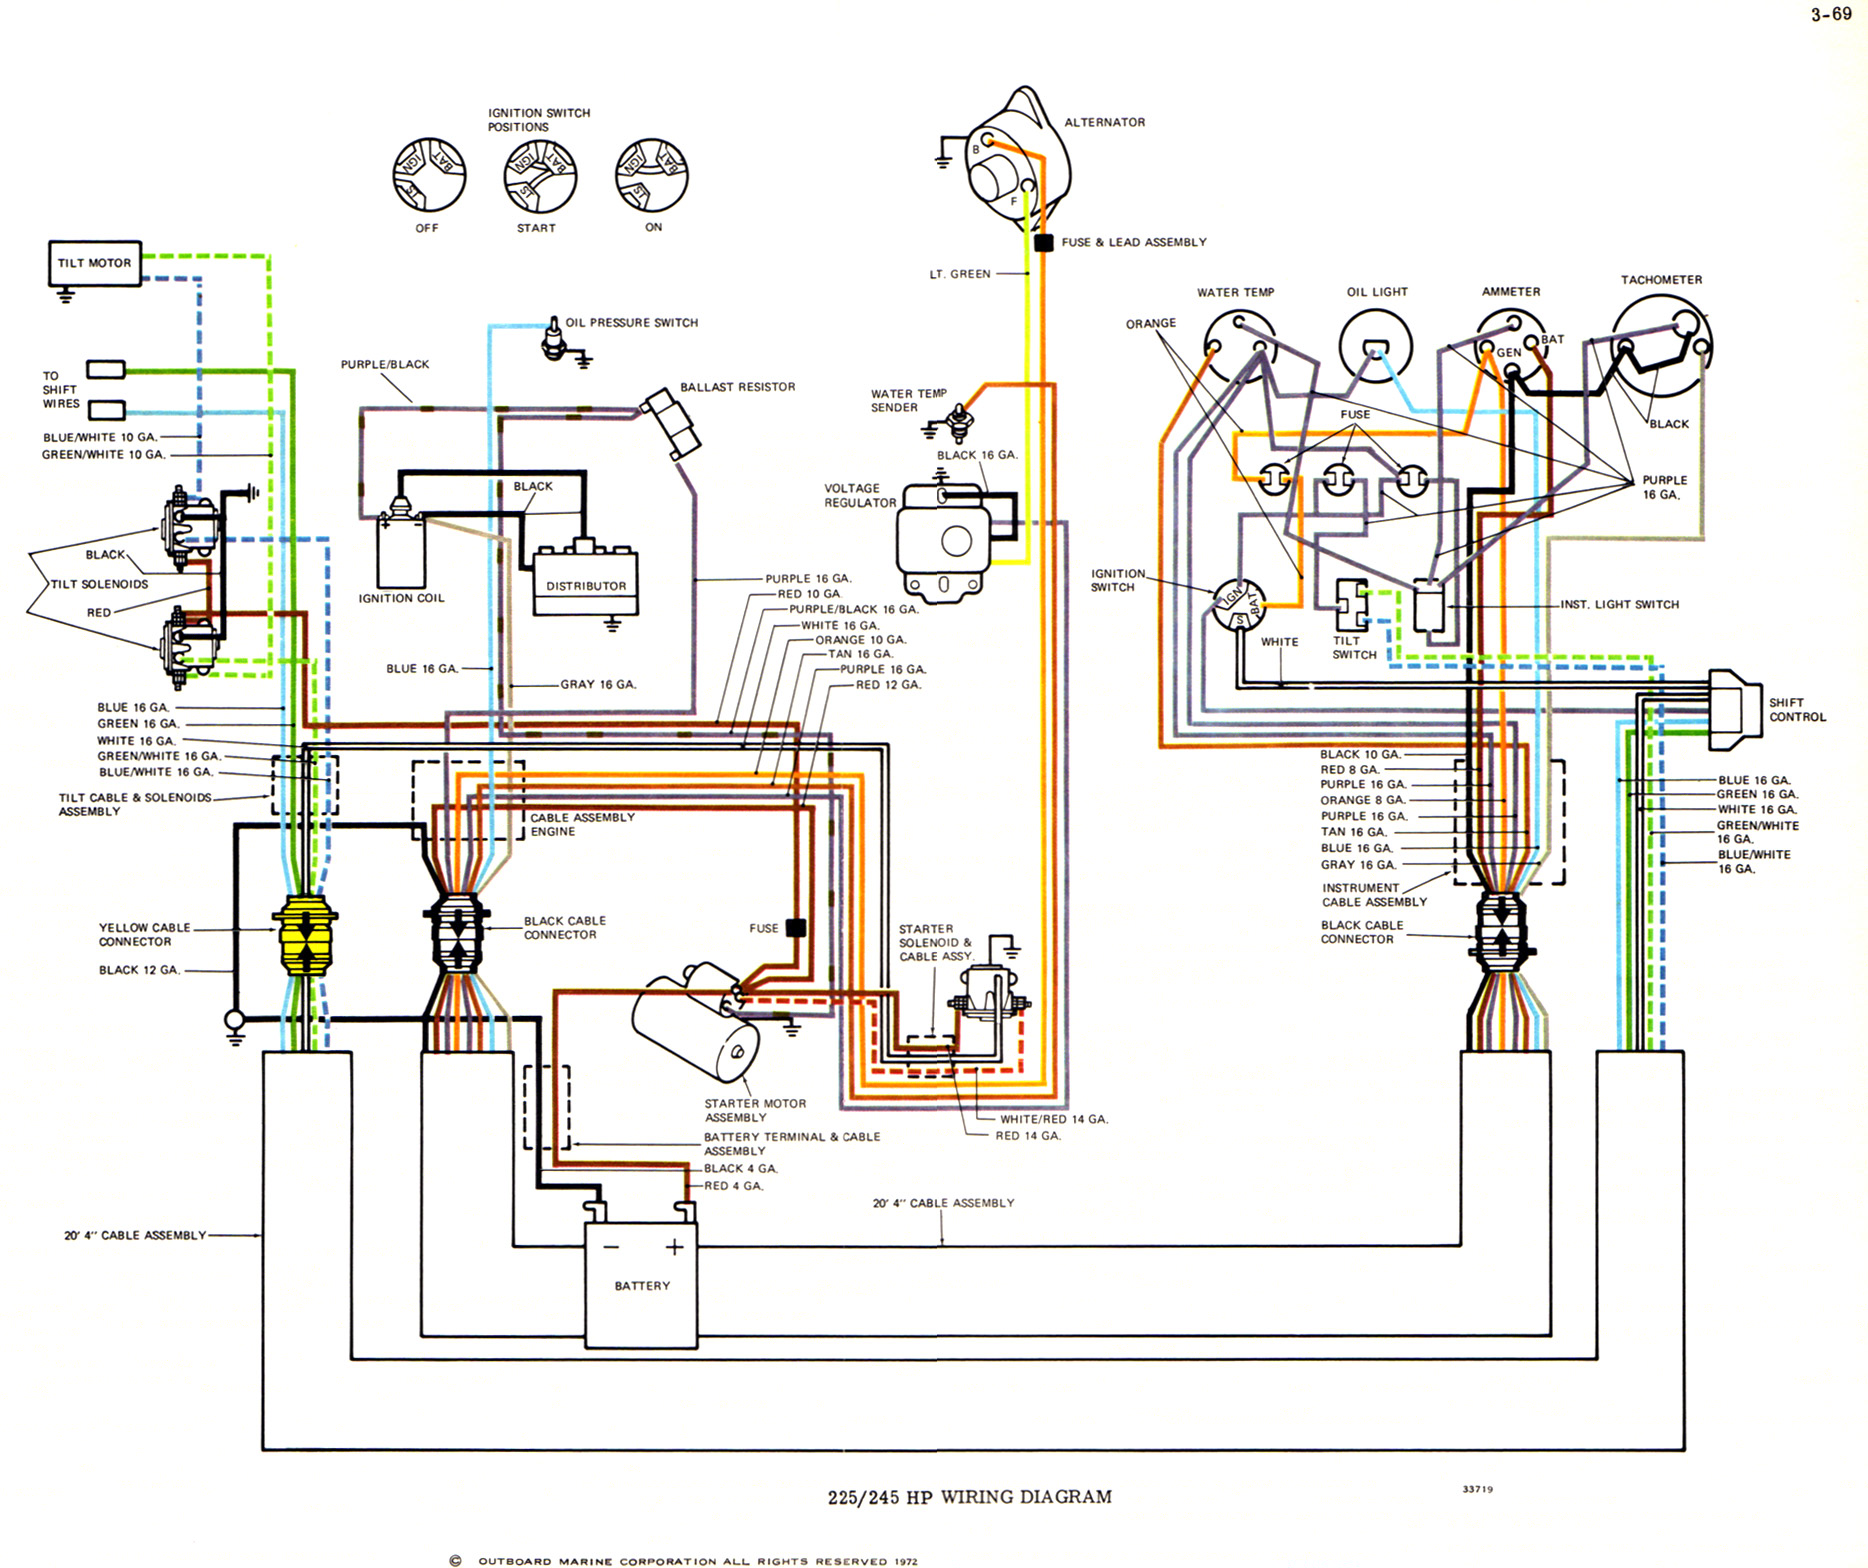 1970 Dodge Challenger Radio Wiring Harness Diagram Block Alternator Get Free Image About 1972 2010